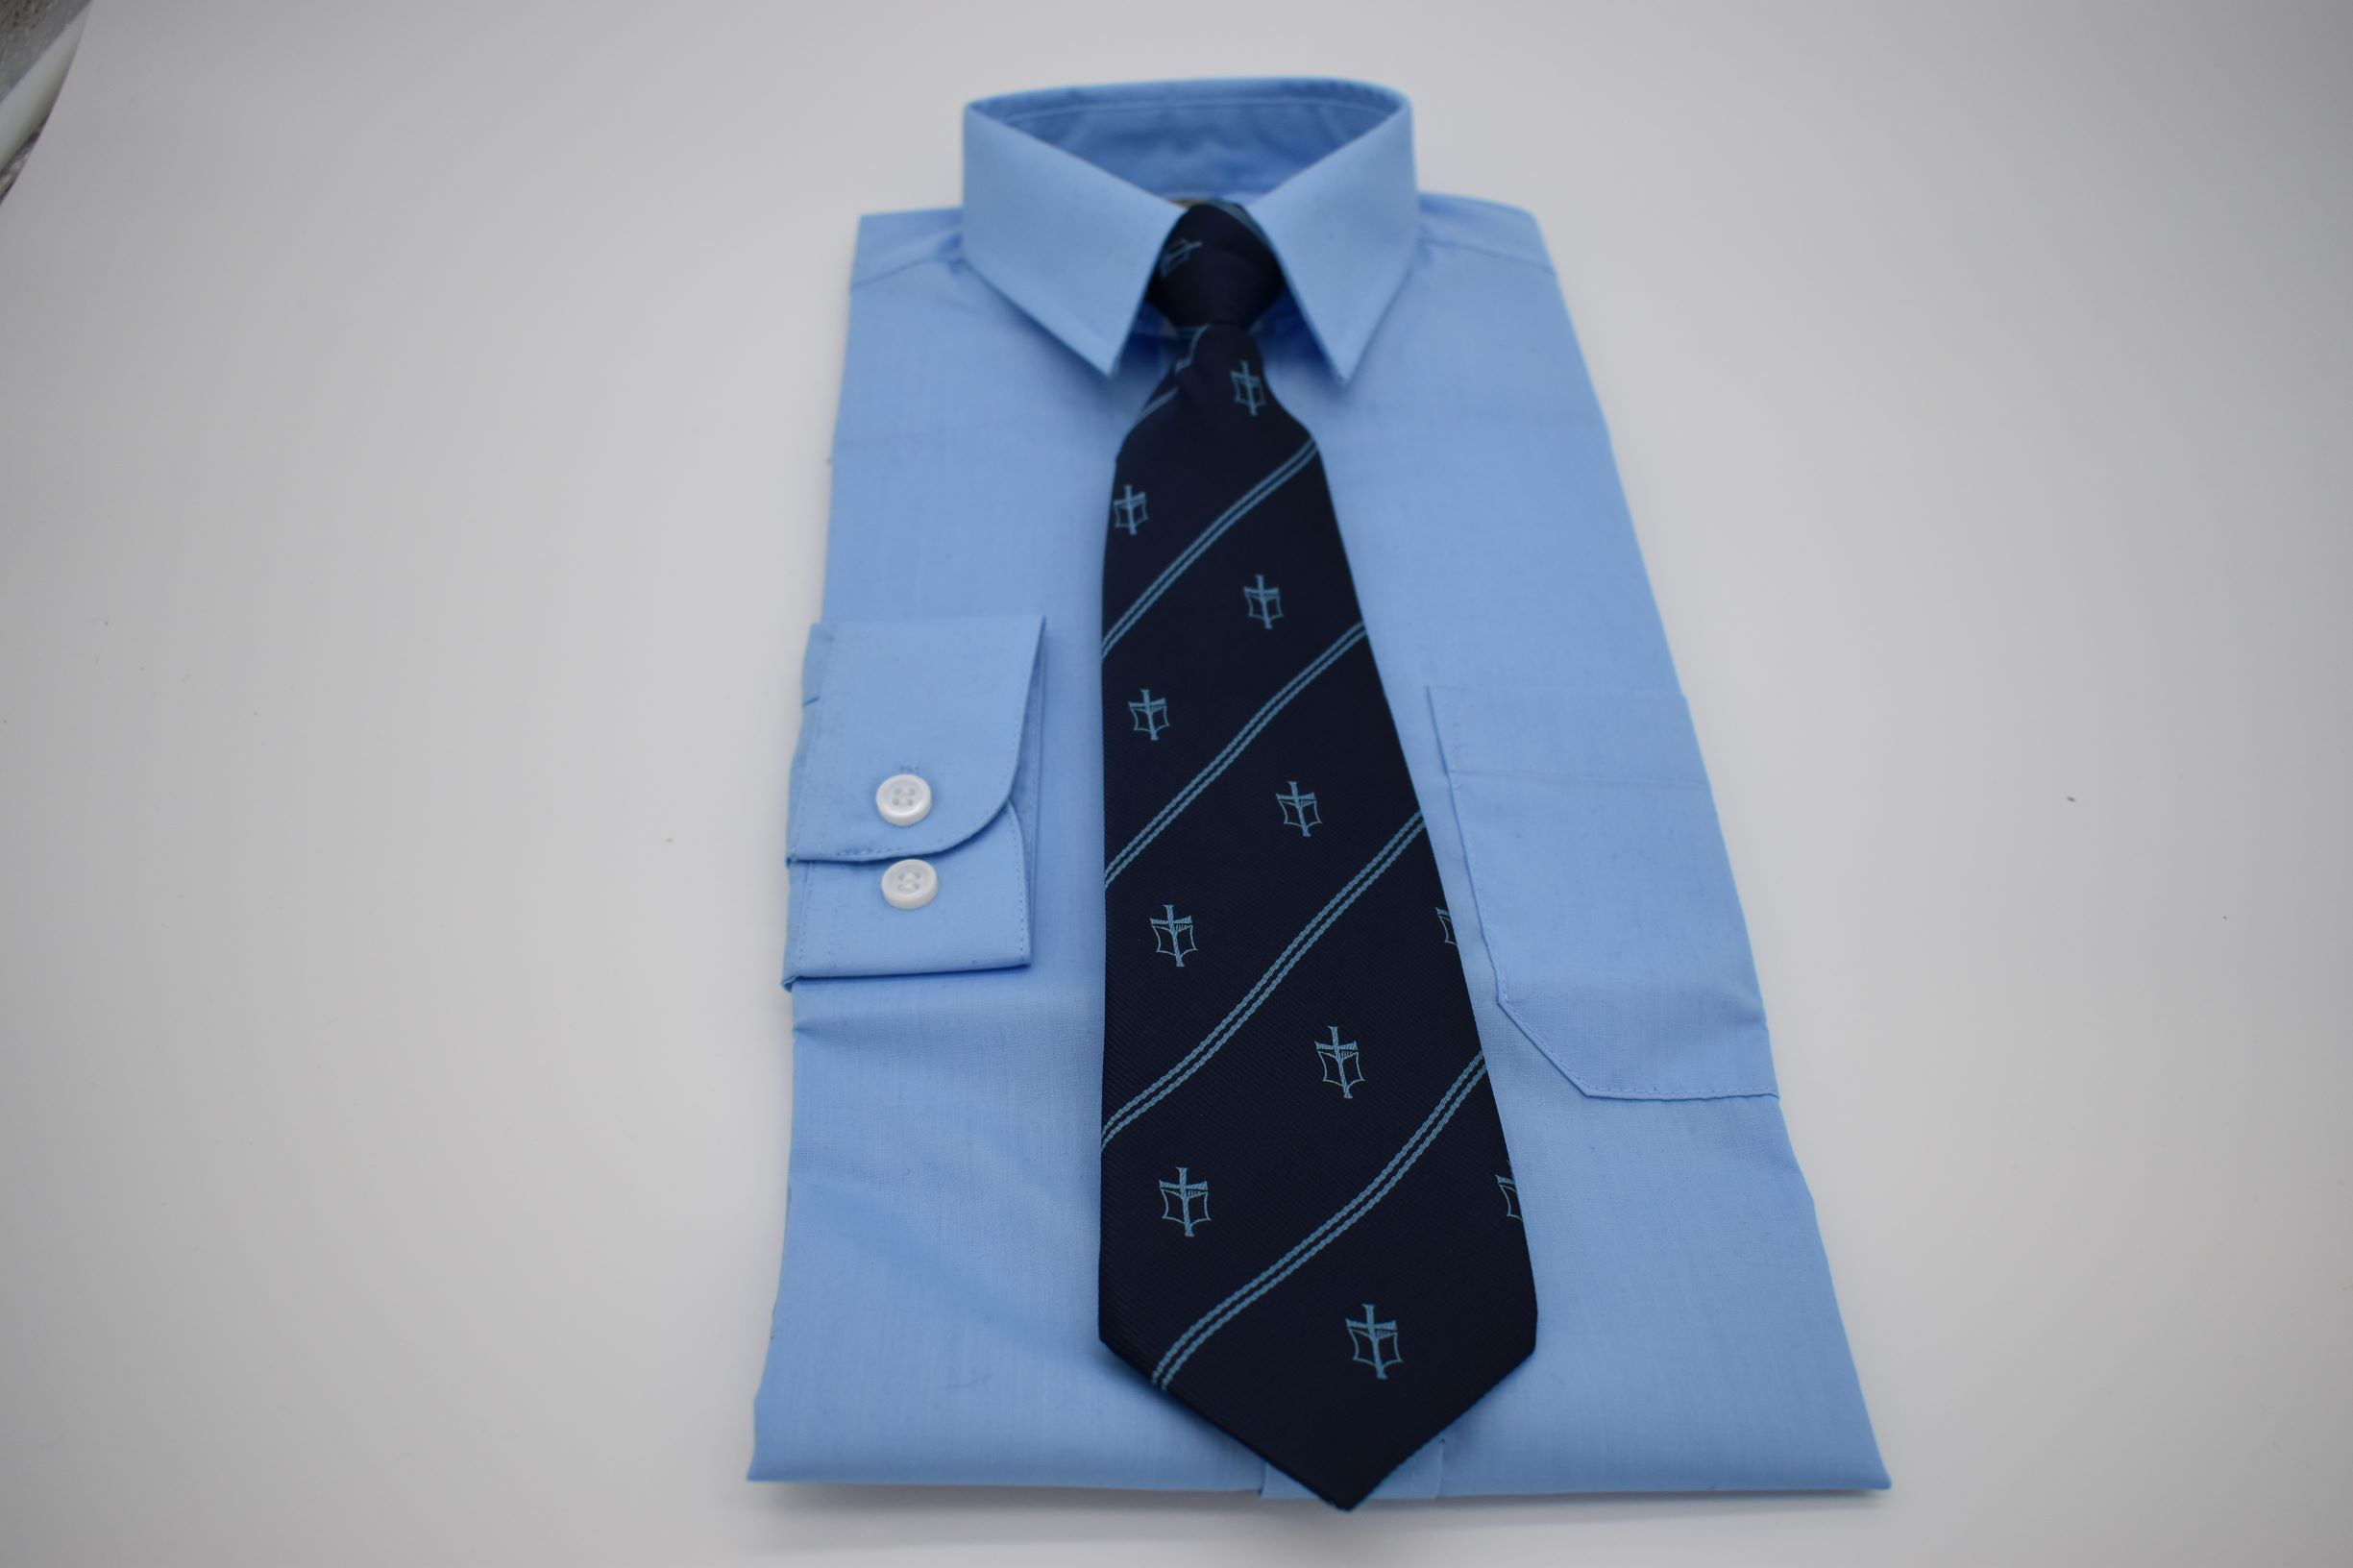 Tie with school logo